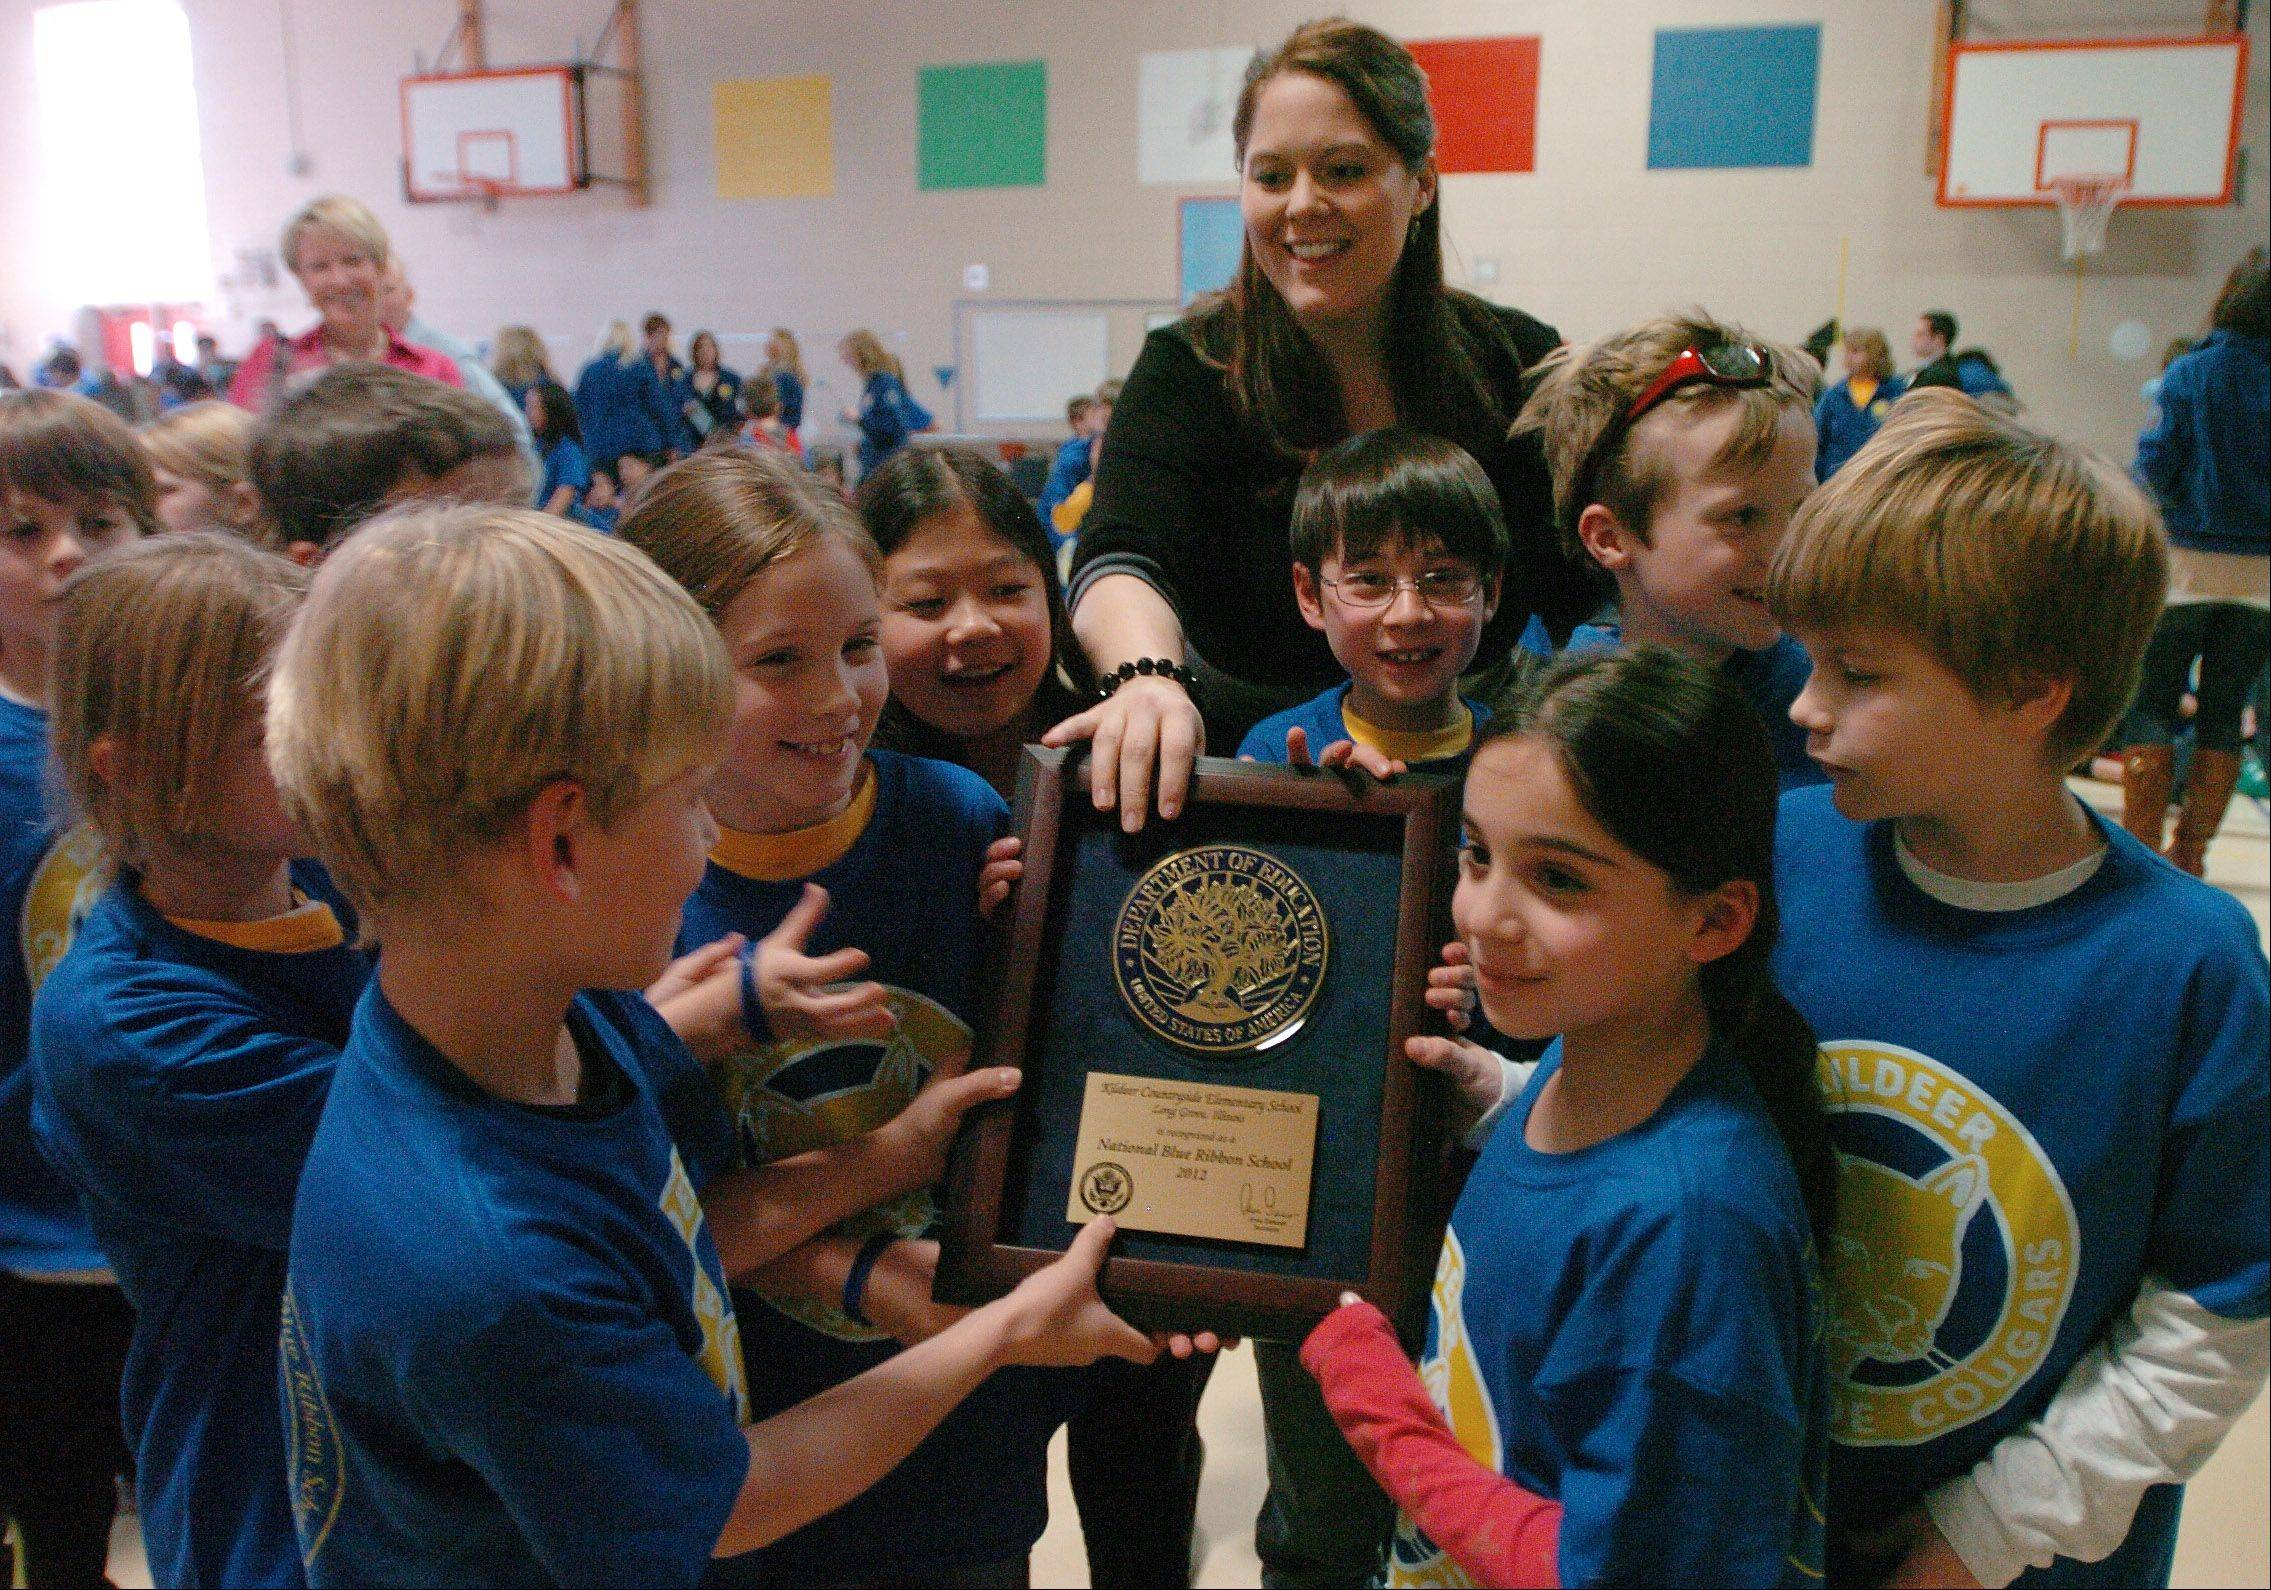 Principal Jennifer Smith passes the plaque among third-graders at the celebration.